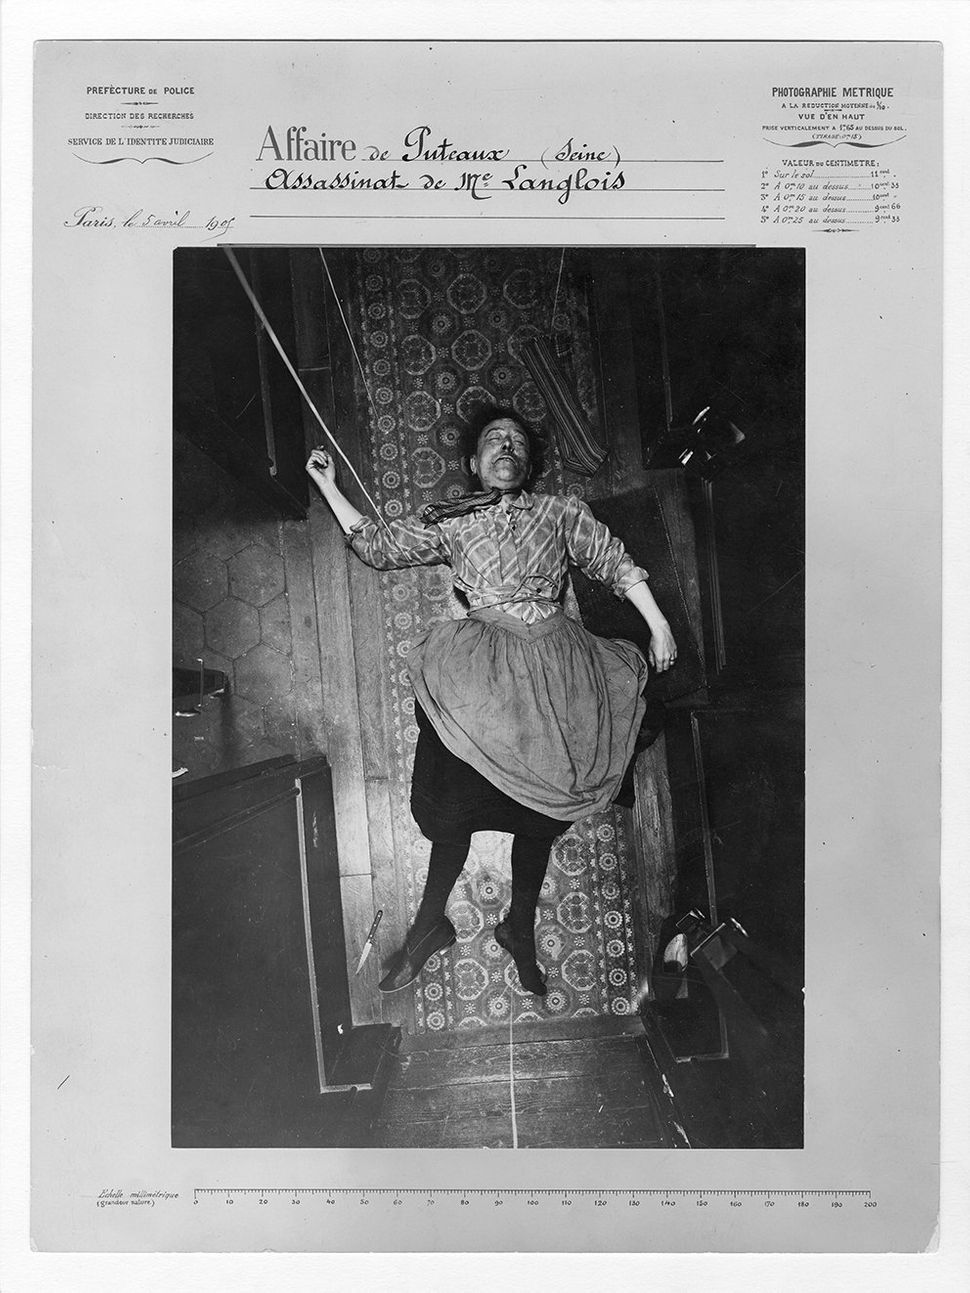 The murder of Madame Langlois, the Puteaux case, April 5, 1905. Protocol by Alphonse Bertillon.